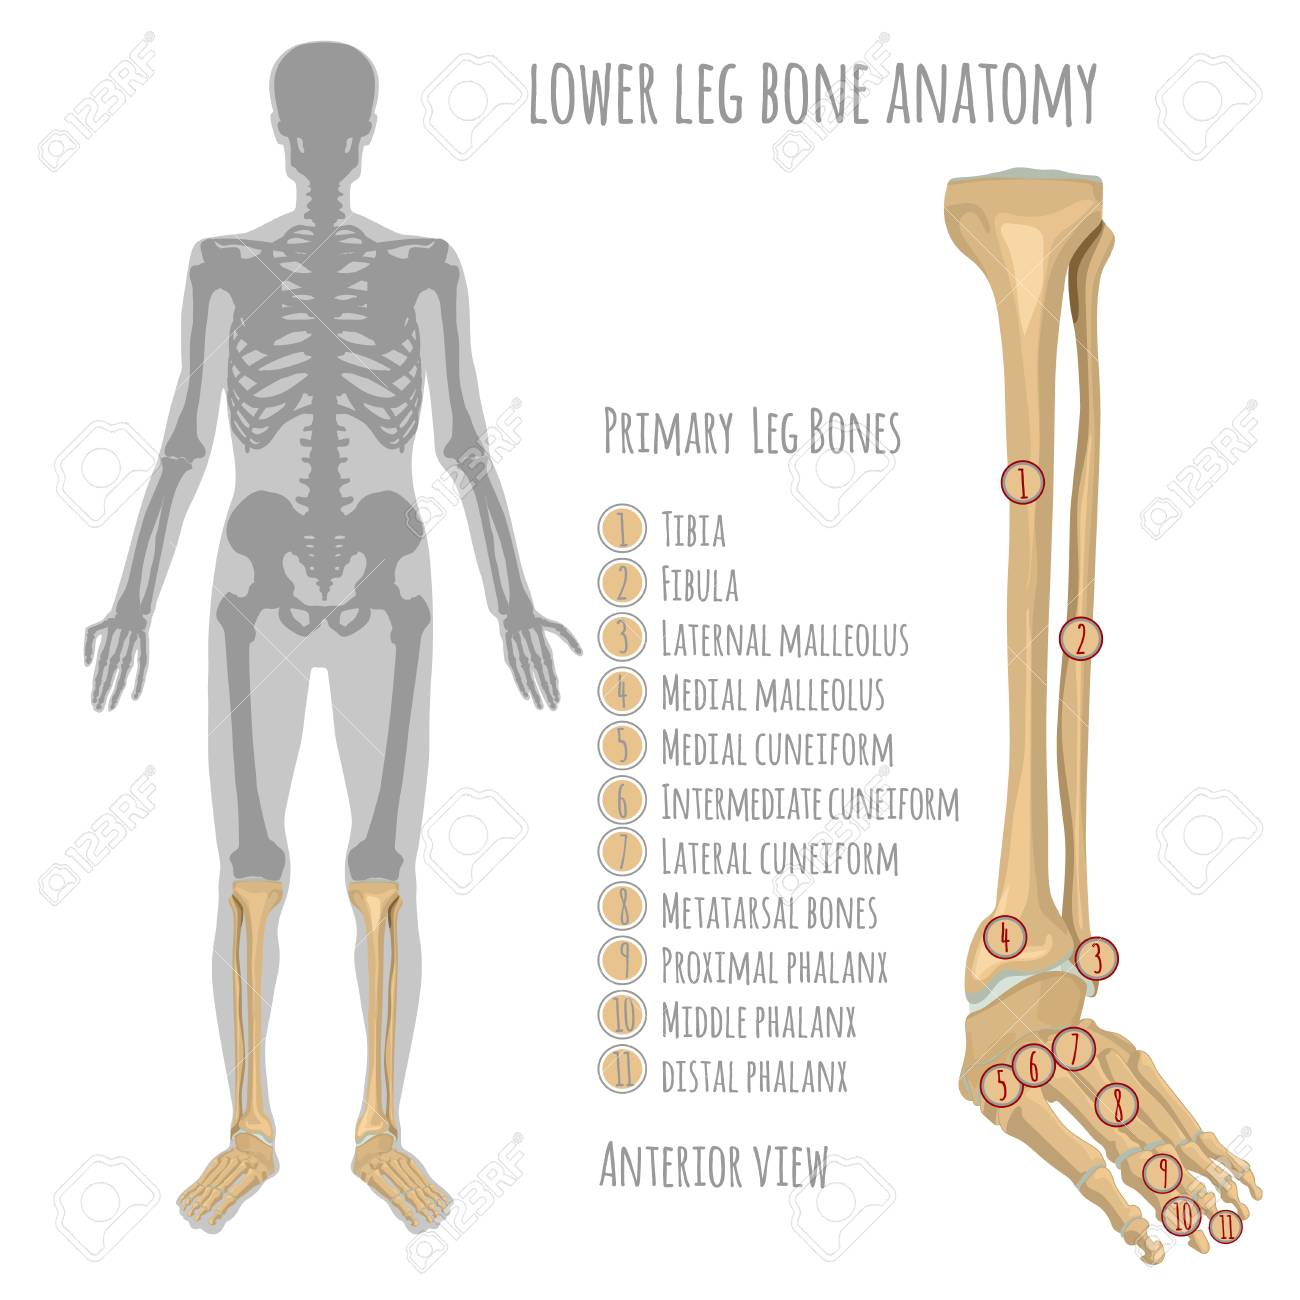 Lower Leg Bone Anatomy. Anterior View With Primary Bones Names ...